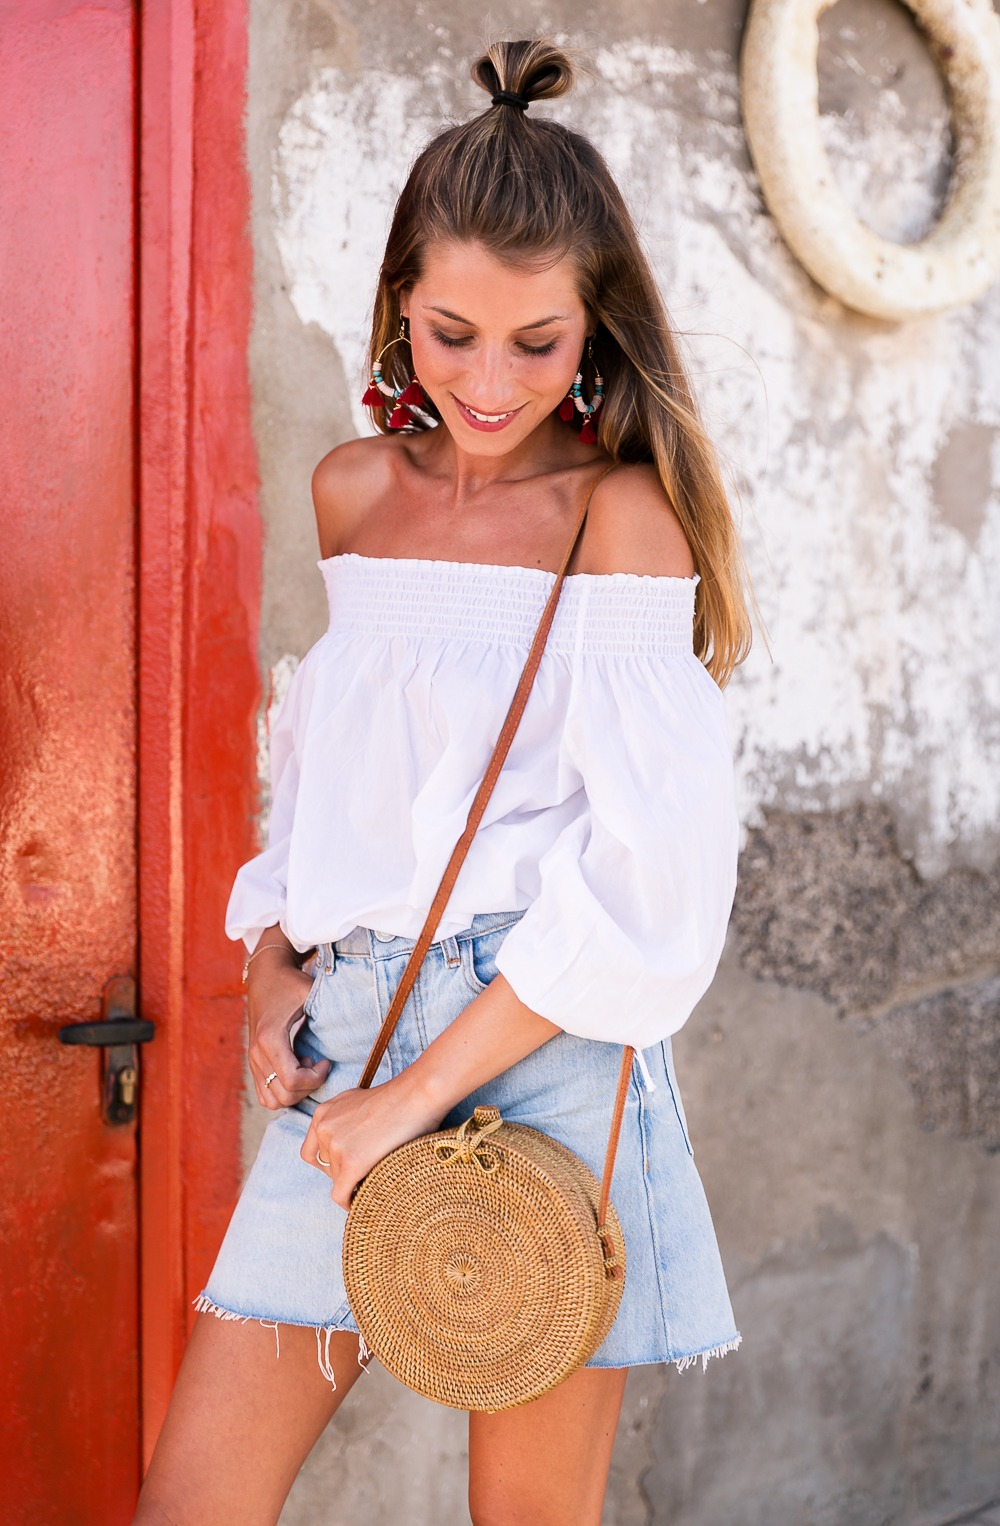 red shoes outfit jeans skirt denim off the shoulder top straw bag summerlook fashionblog 1